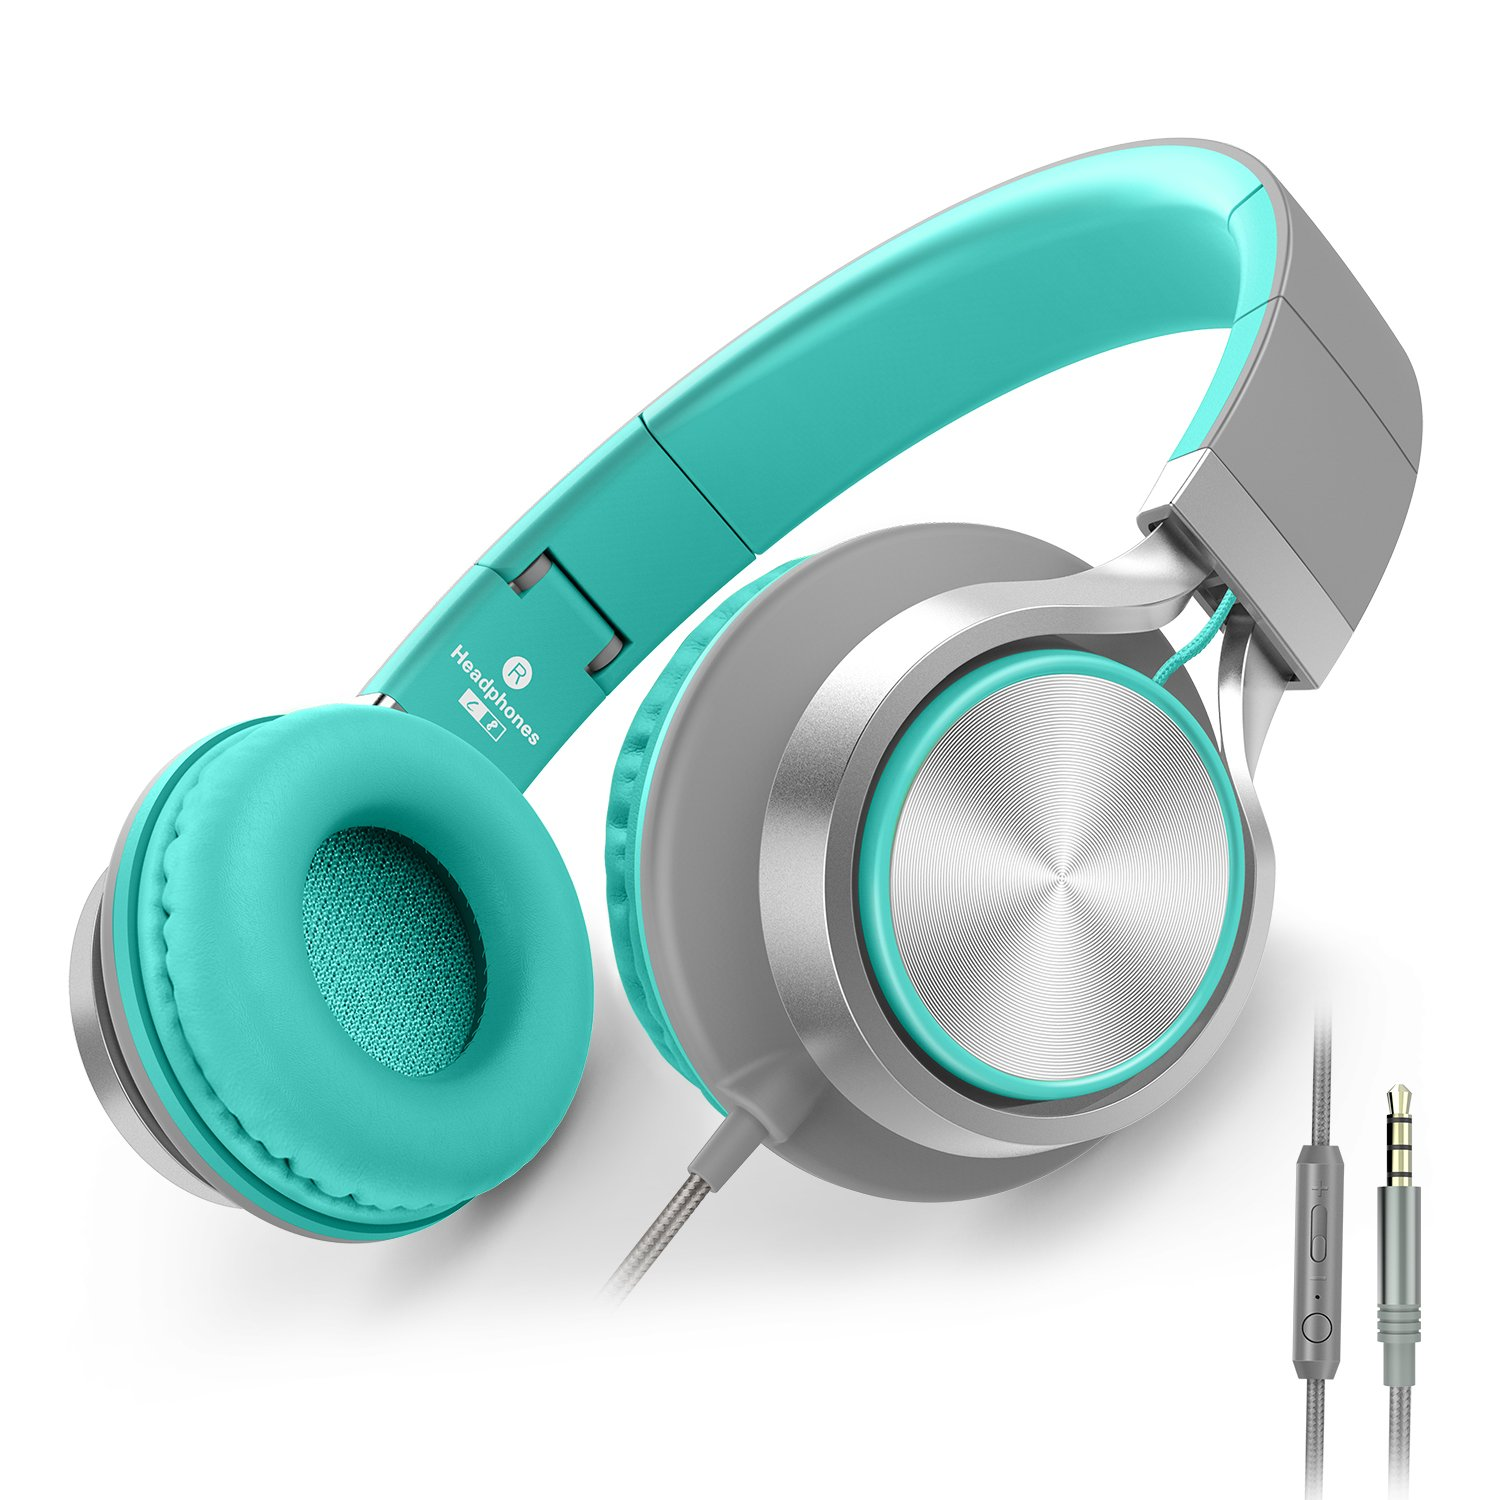 AILIHEN C8 Headphones with Microphone and Volume Control Folding Lightweight Headset for Cellphones Tablets Smartphones Laptop Computer PC Mp3/4 (Grey/Mint) by AILIHEN